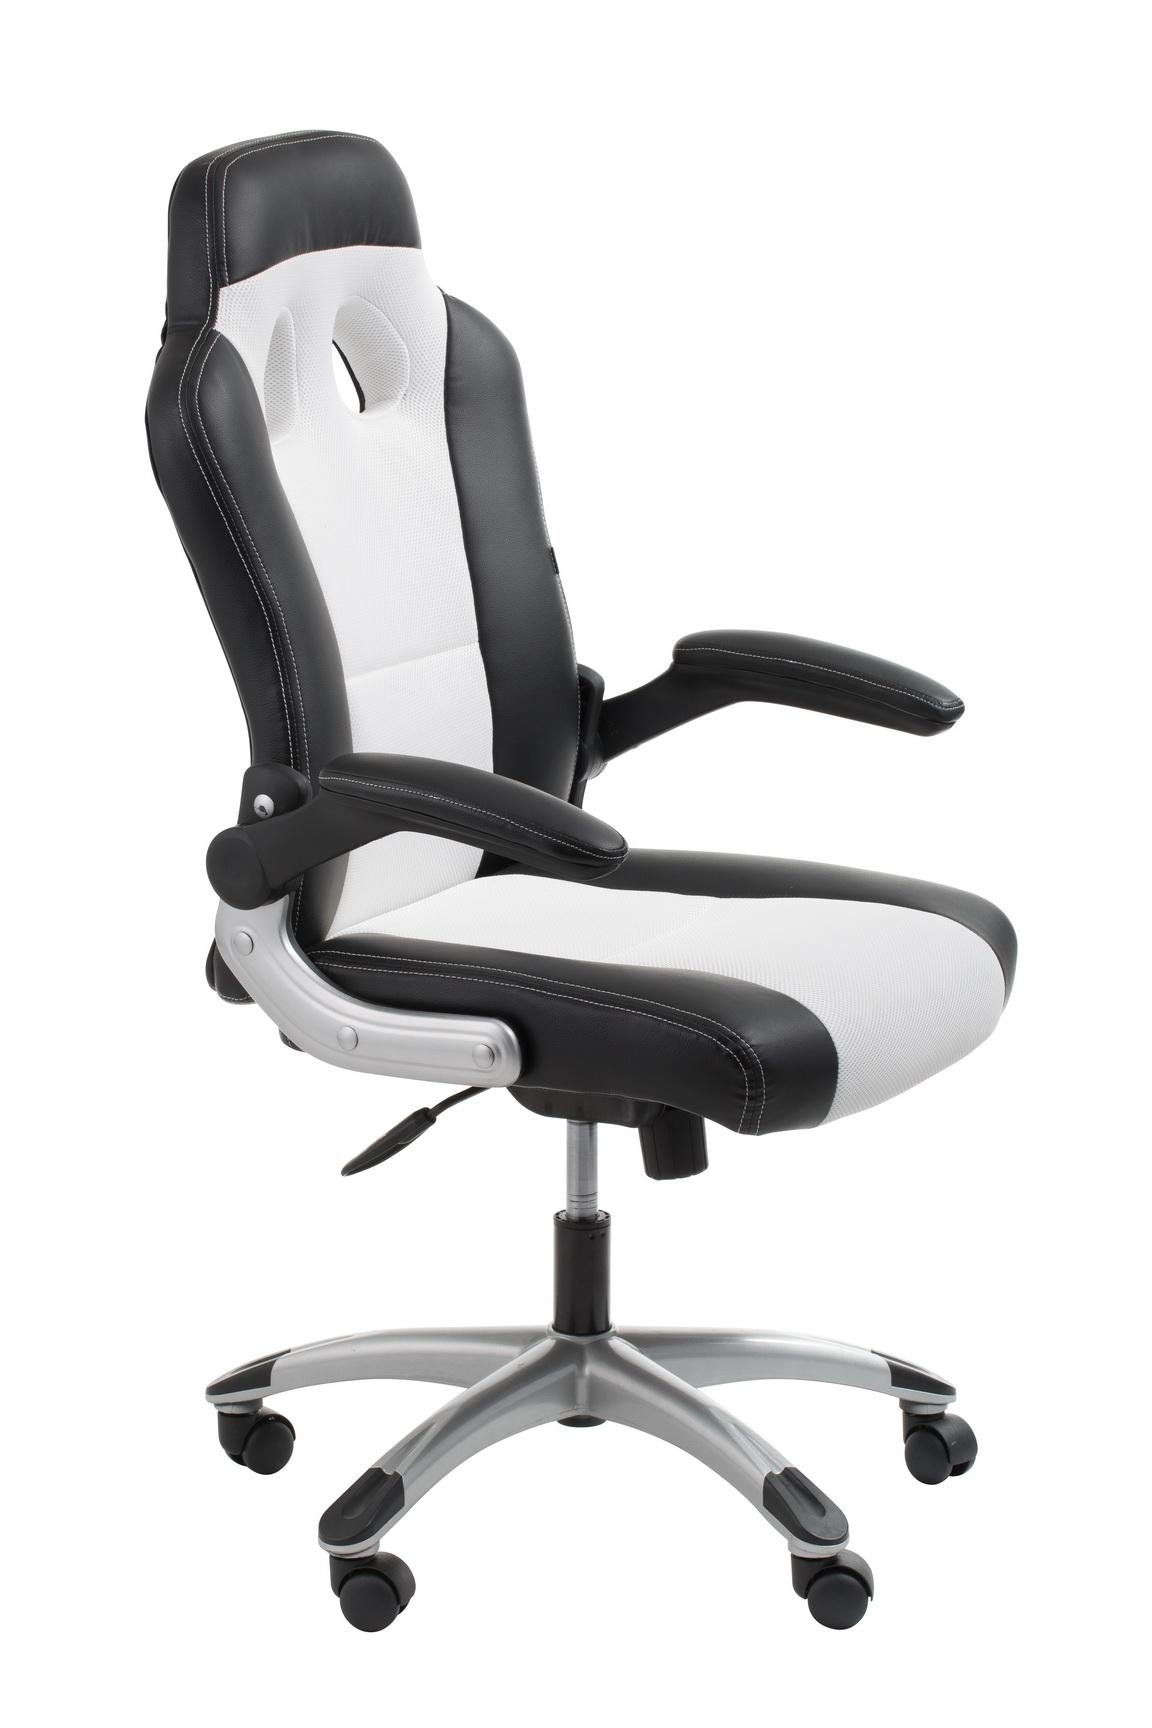 racer office furniture store office furnitures office